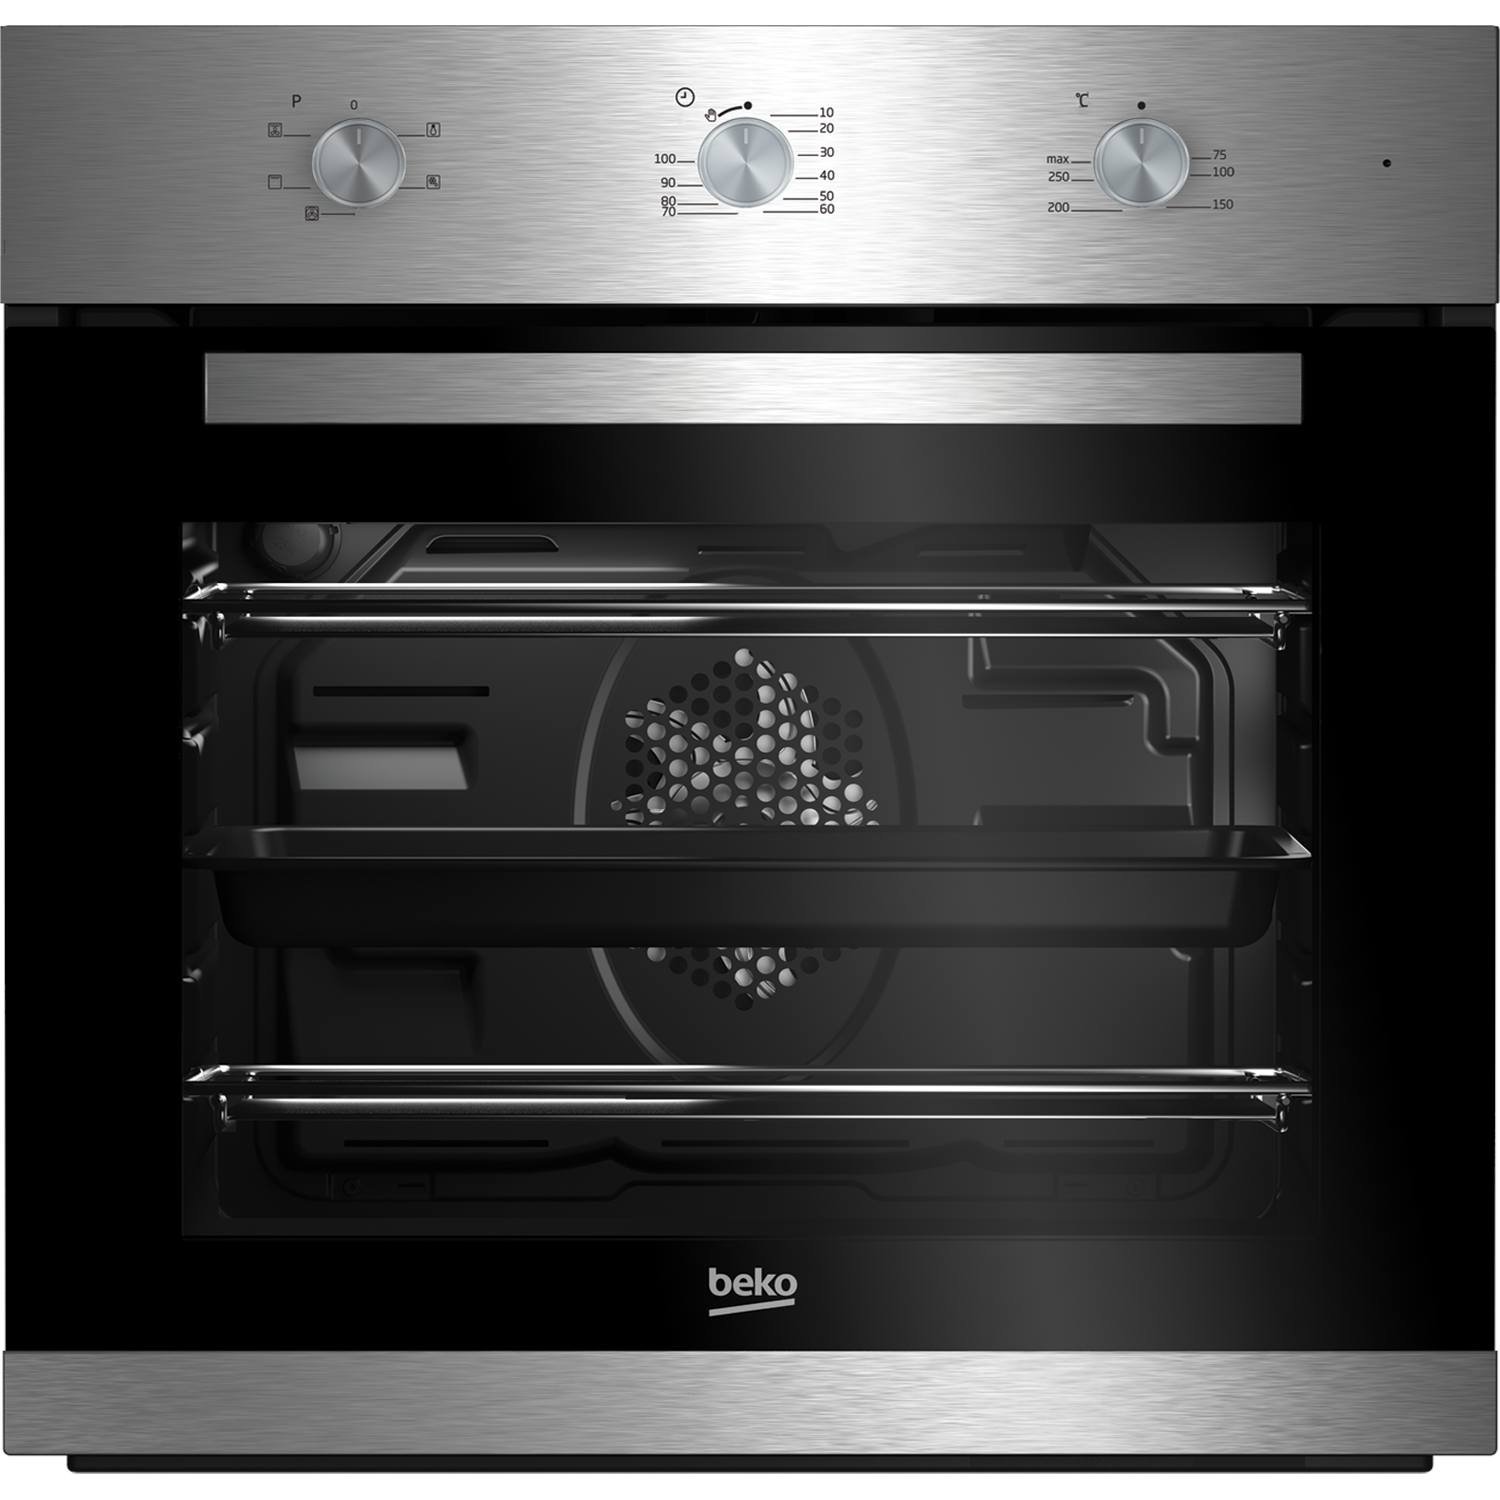 beko bif22100x a rated built in electric grill single oven. Black Bedroom Furniture Sets. Home Design Ideas